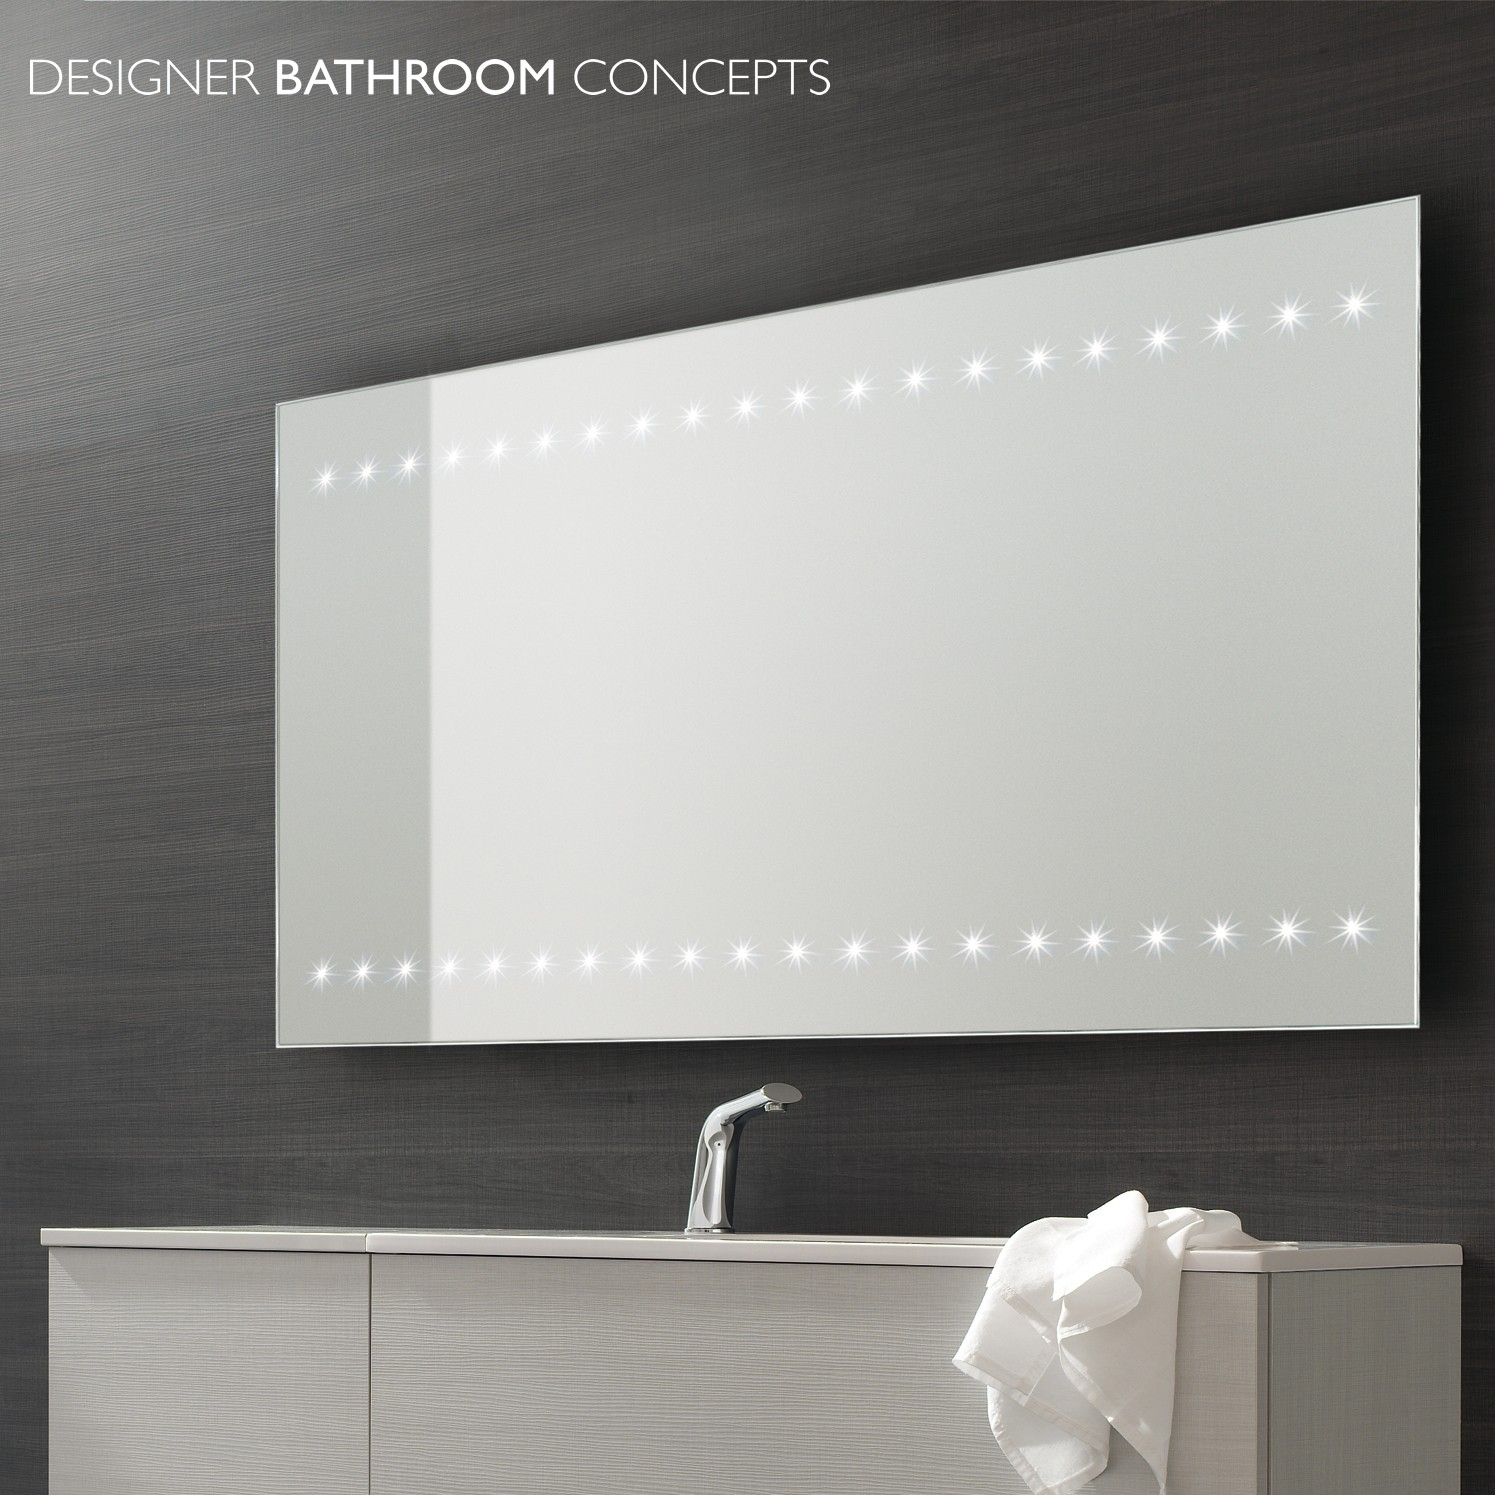 Illuminated Bathroom Mirror Large1495 X 1495